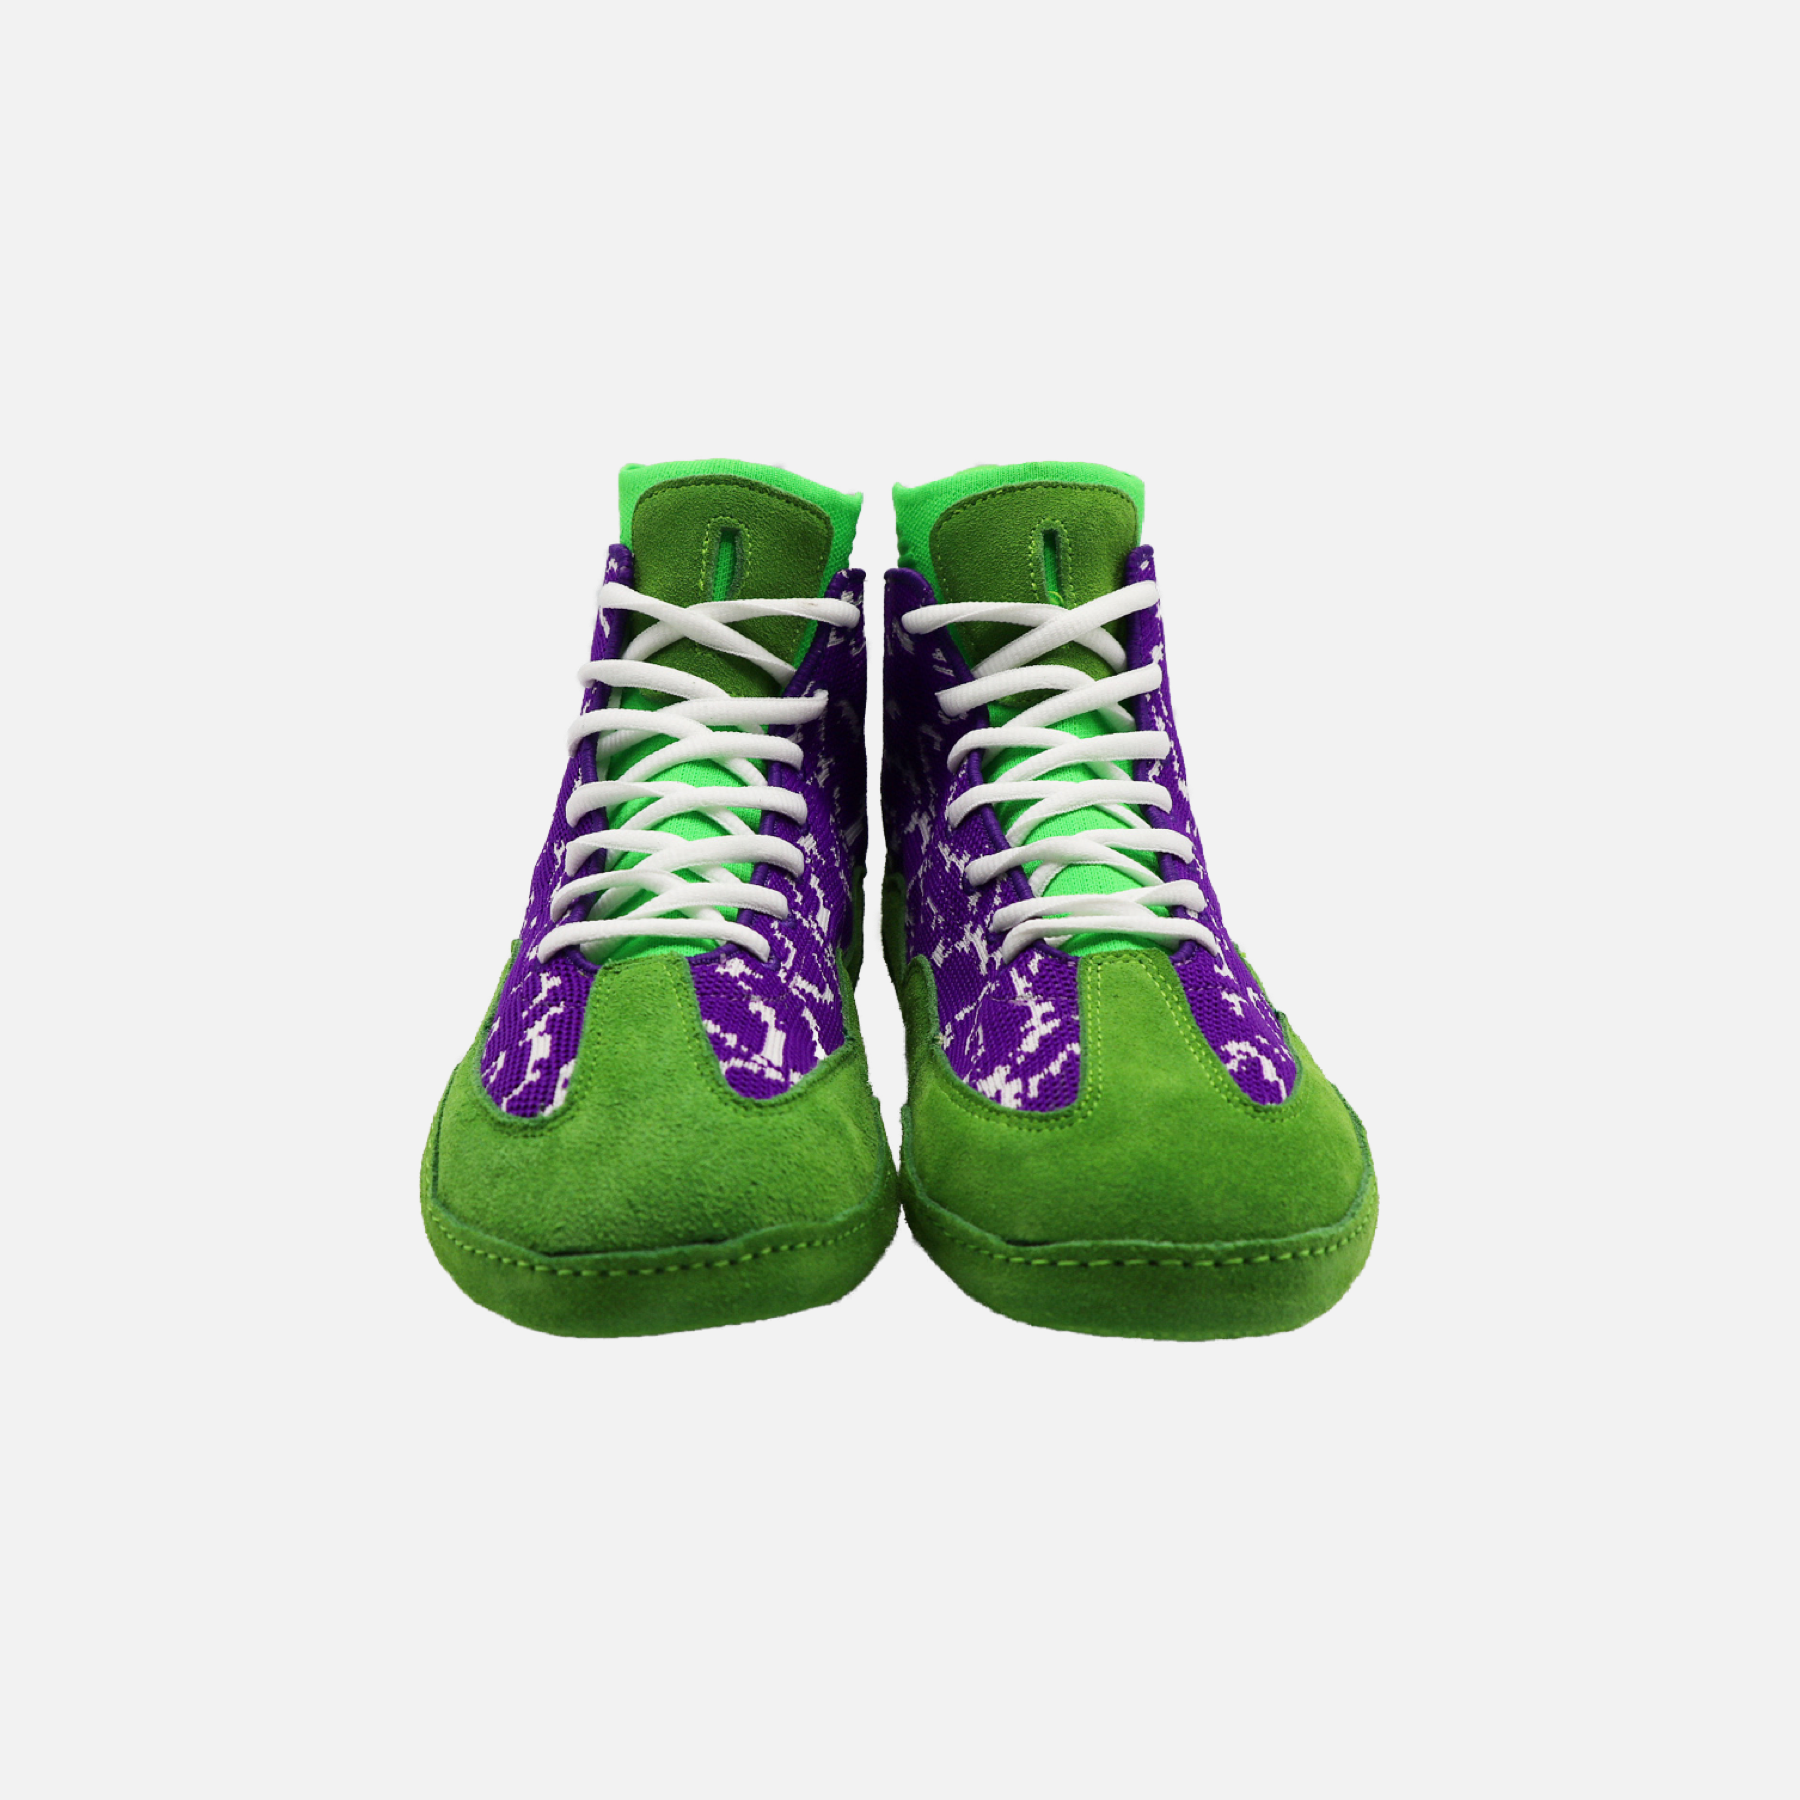 "WB3.5 ""Misfit Meredith Joker"" Wrestling Shoes - Wrestle Boutique"